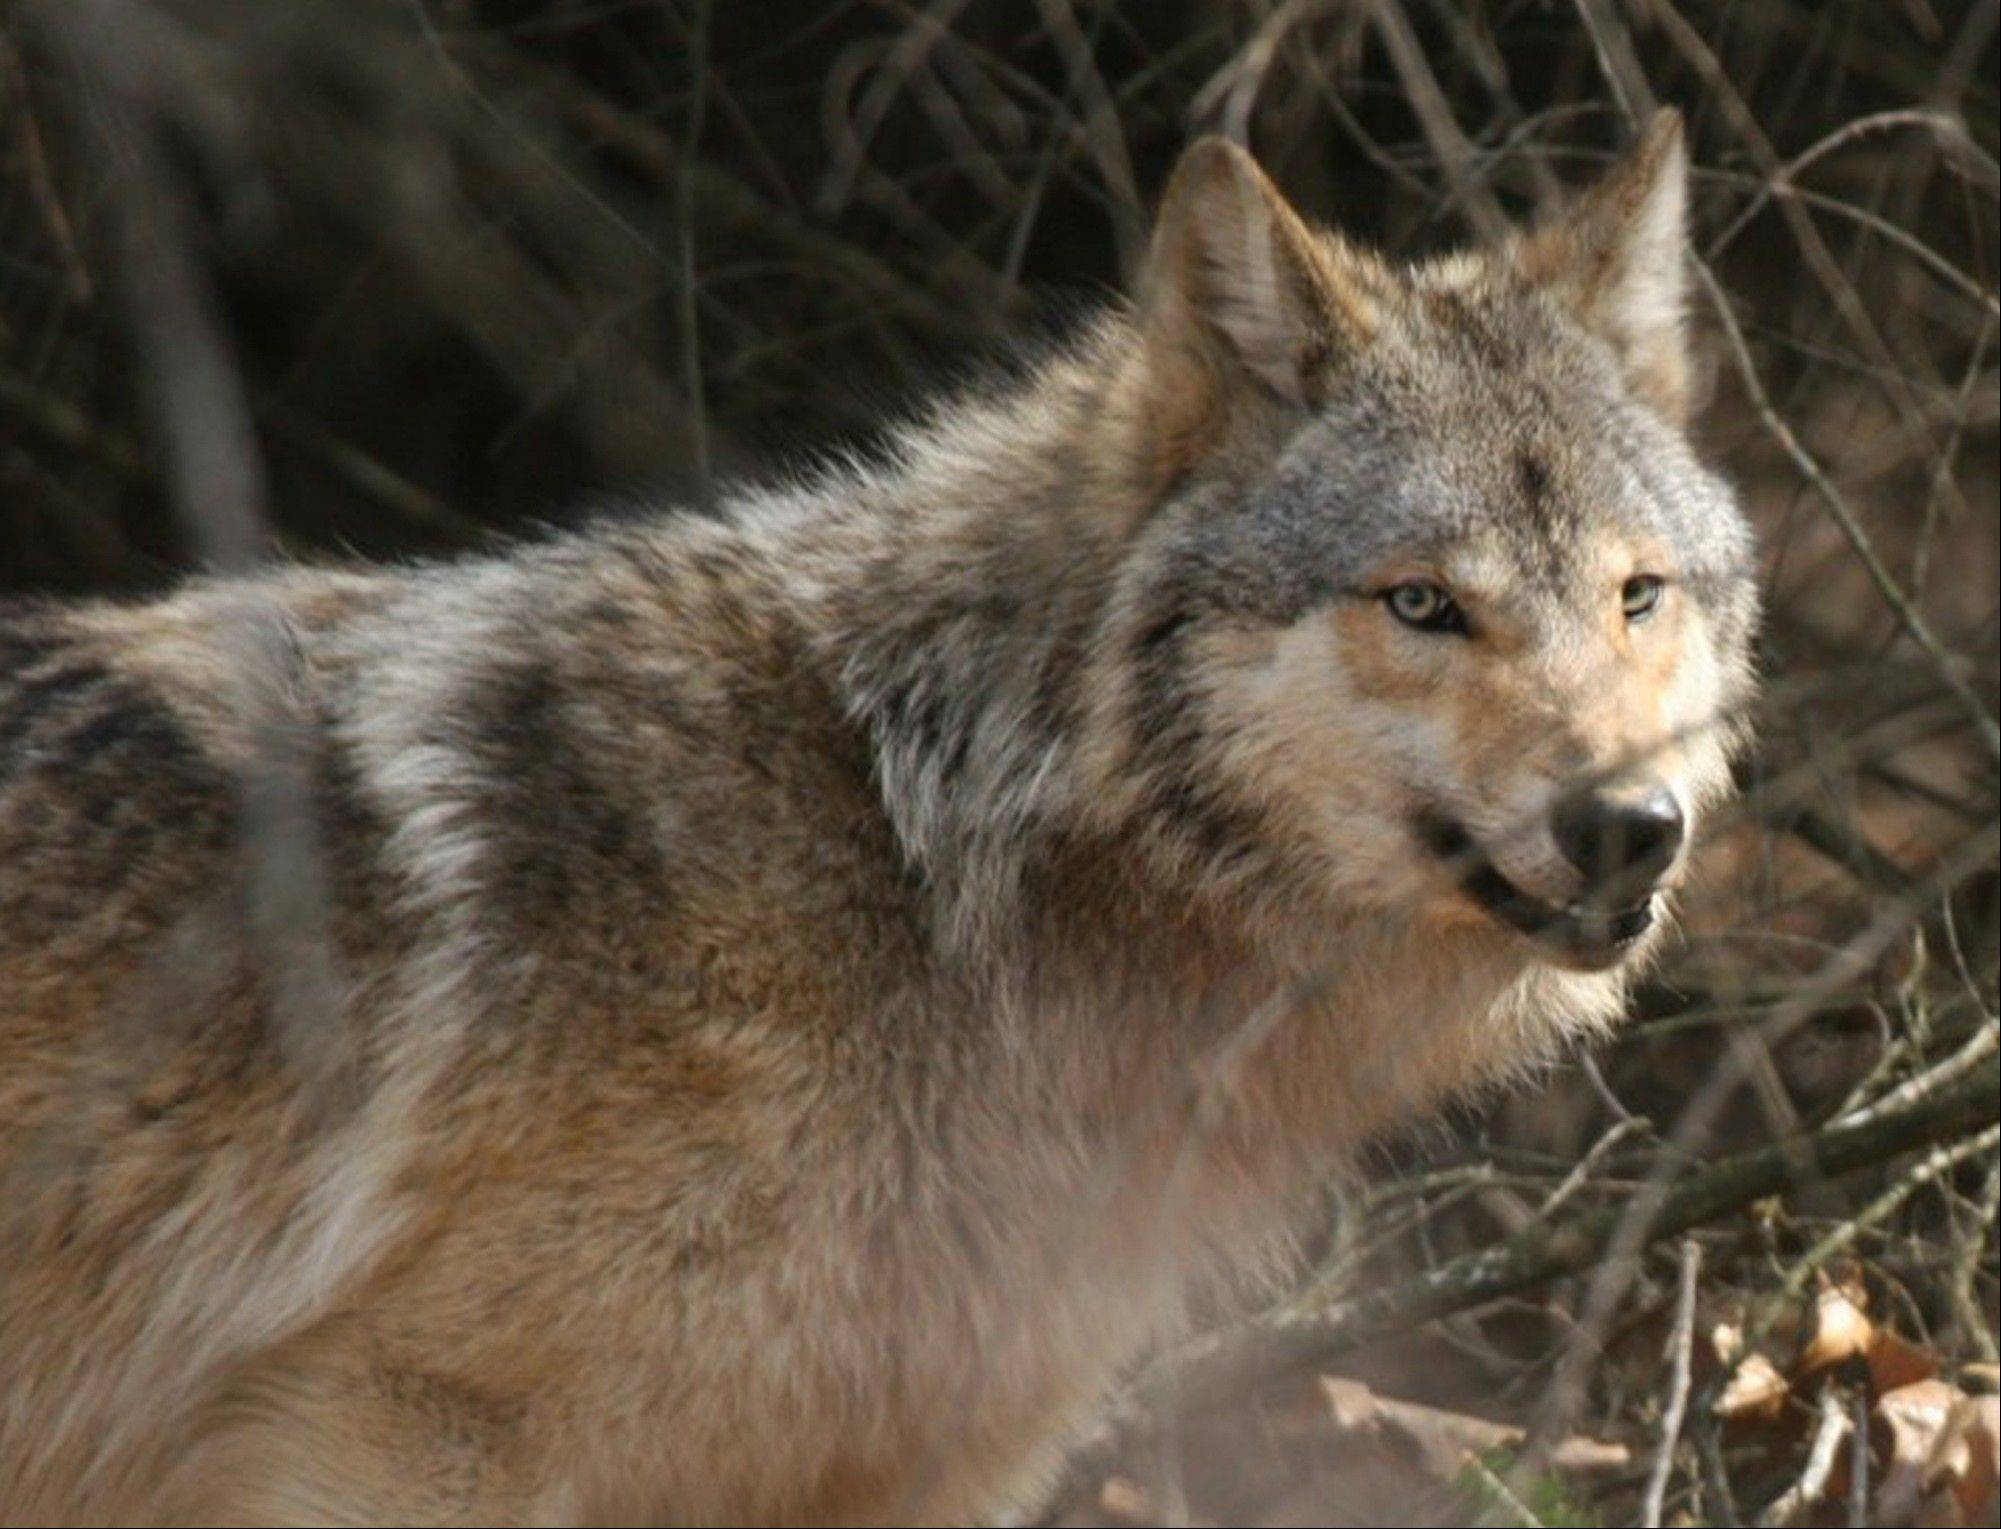 After months of contentious debate, Wisconsin's first organized wolf hunt has begun and will run through February.